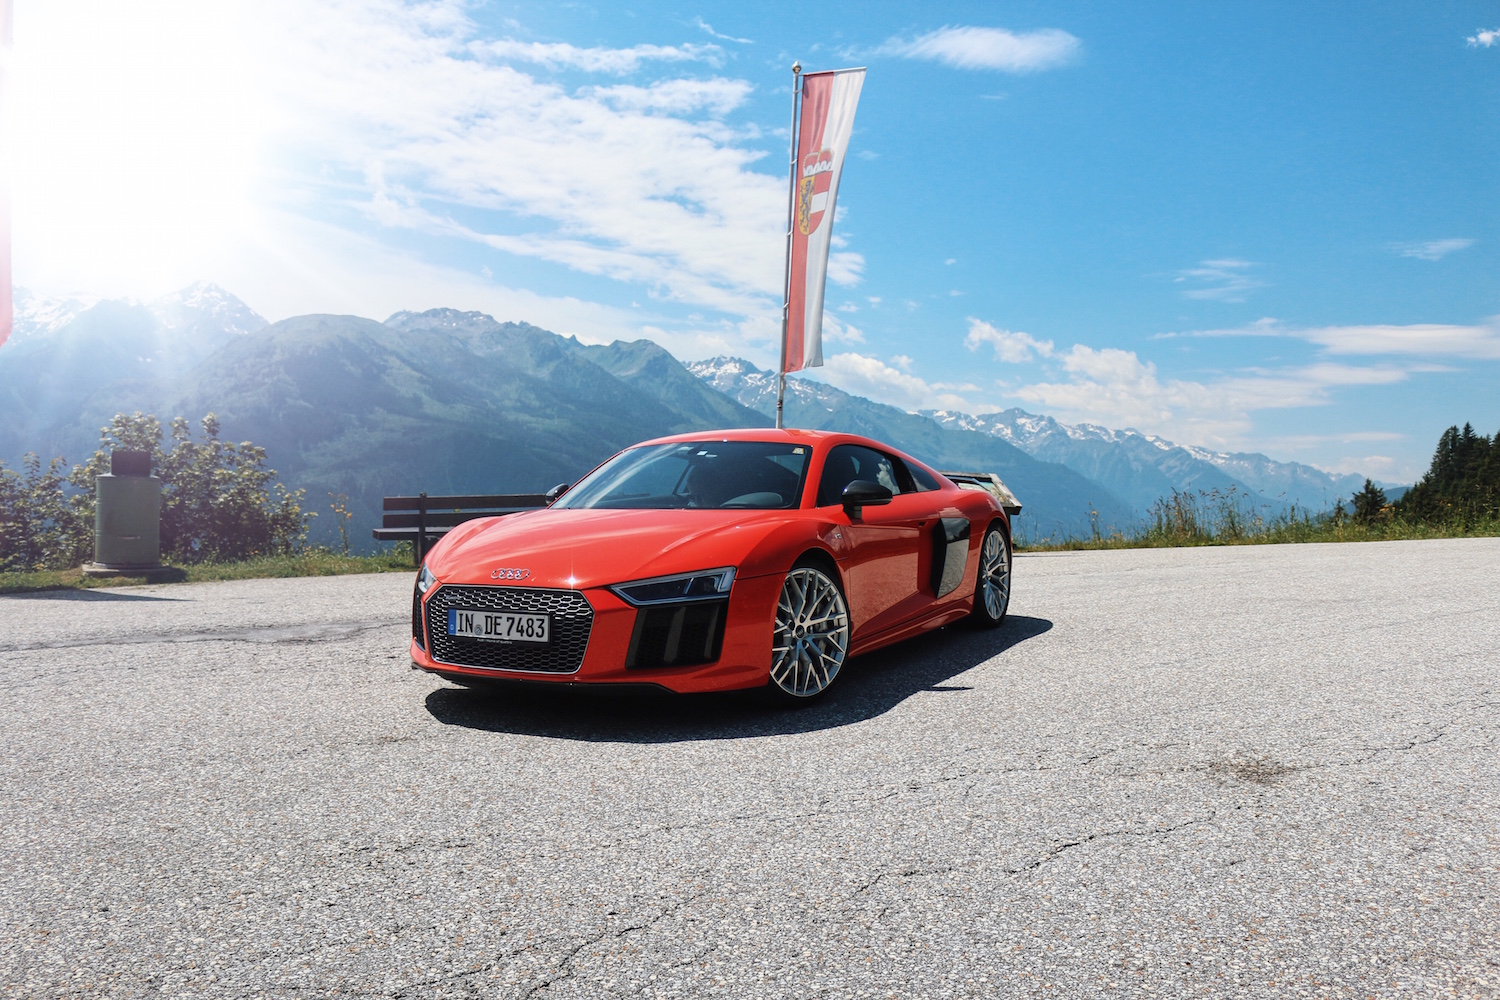 Audi R8 Gerlospass Tour – The Ultimate Driving Experience